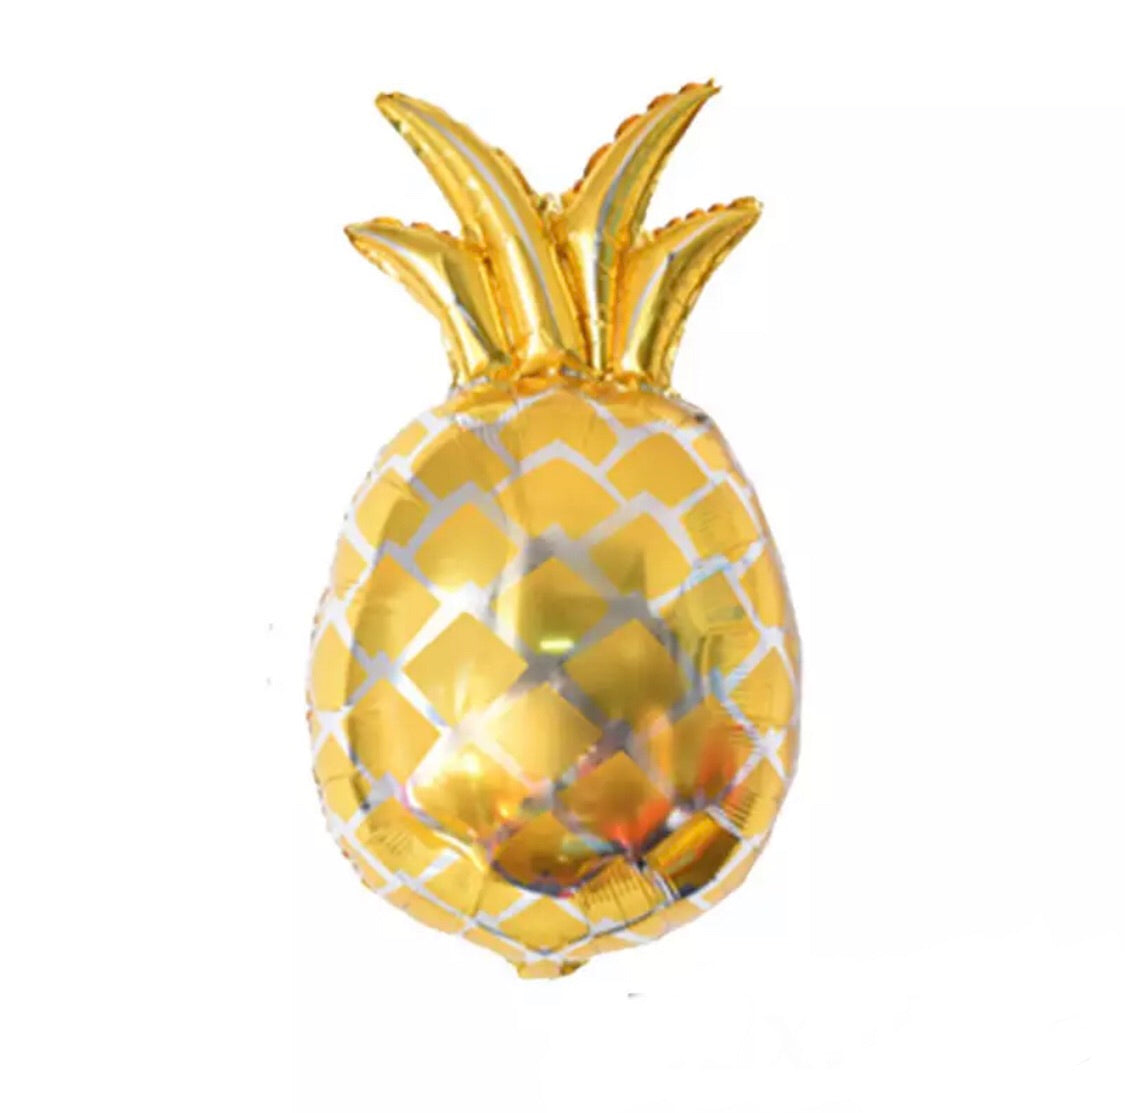 Jumbo pineapple balloon - gold